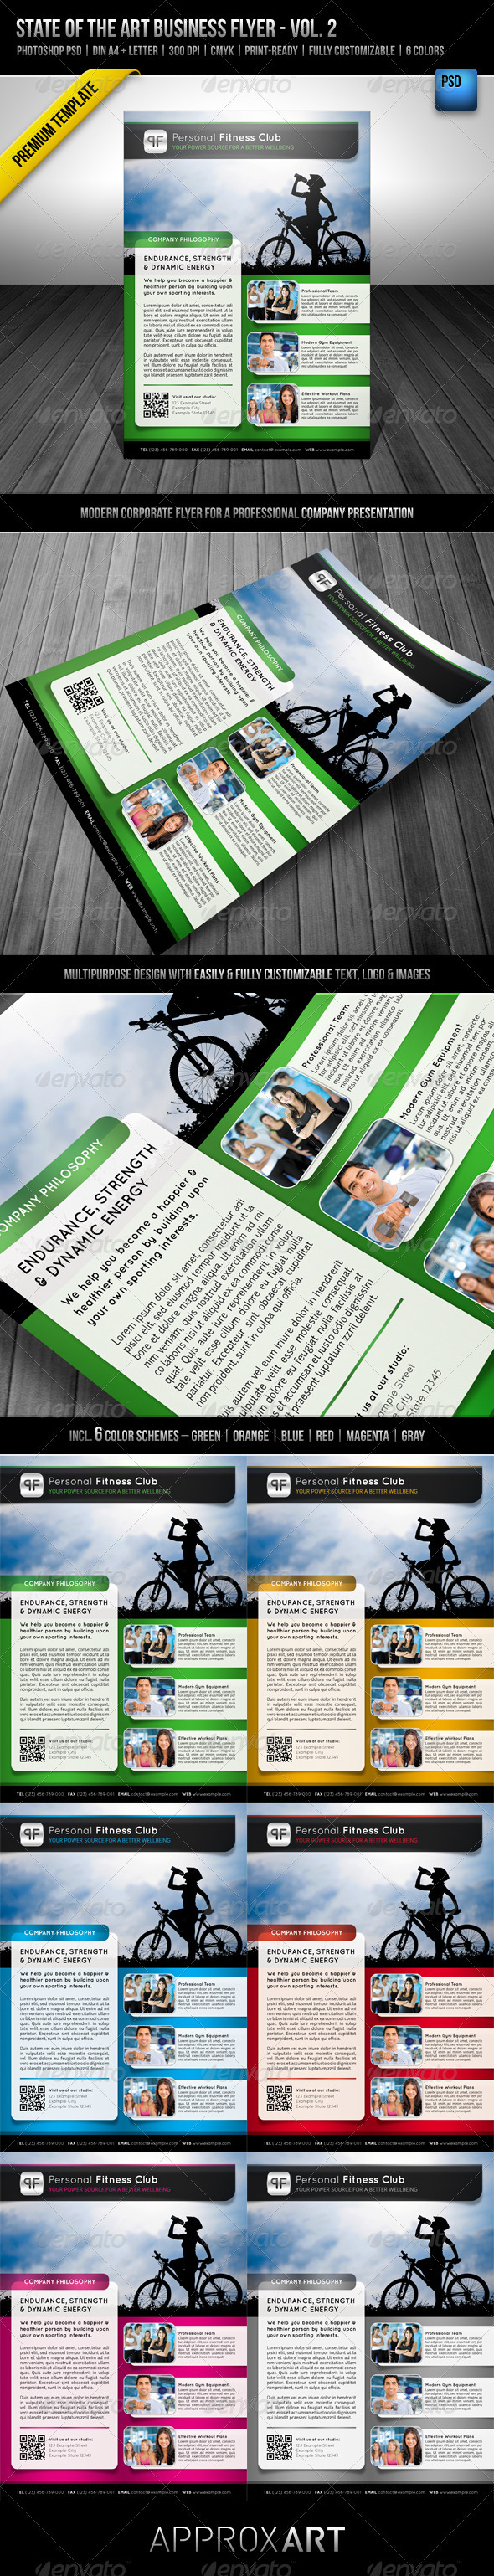 GraphicRiver State of the Art Business Flyer Vol 2 2576218